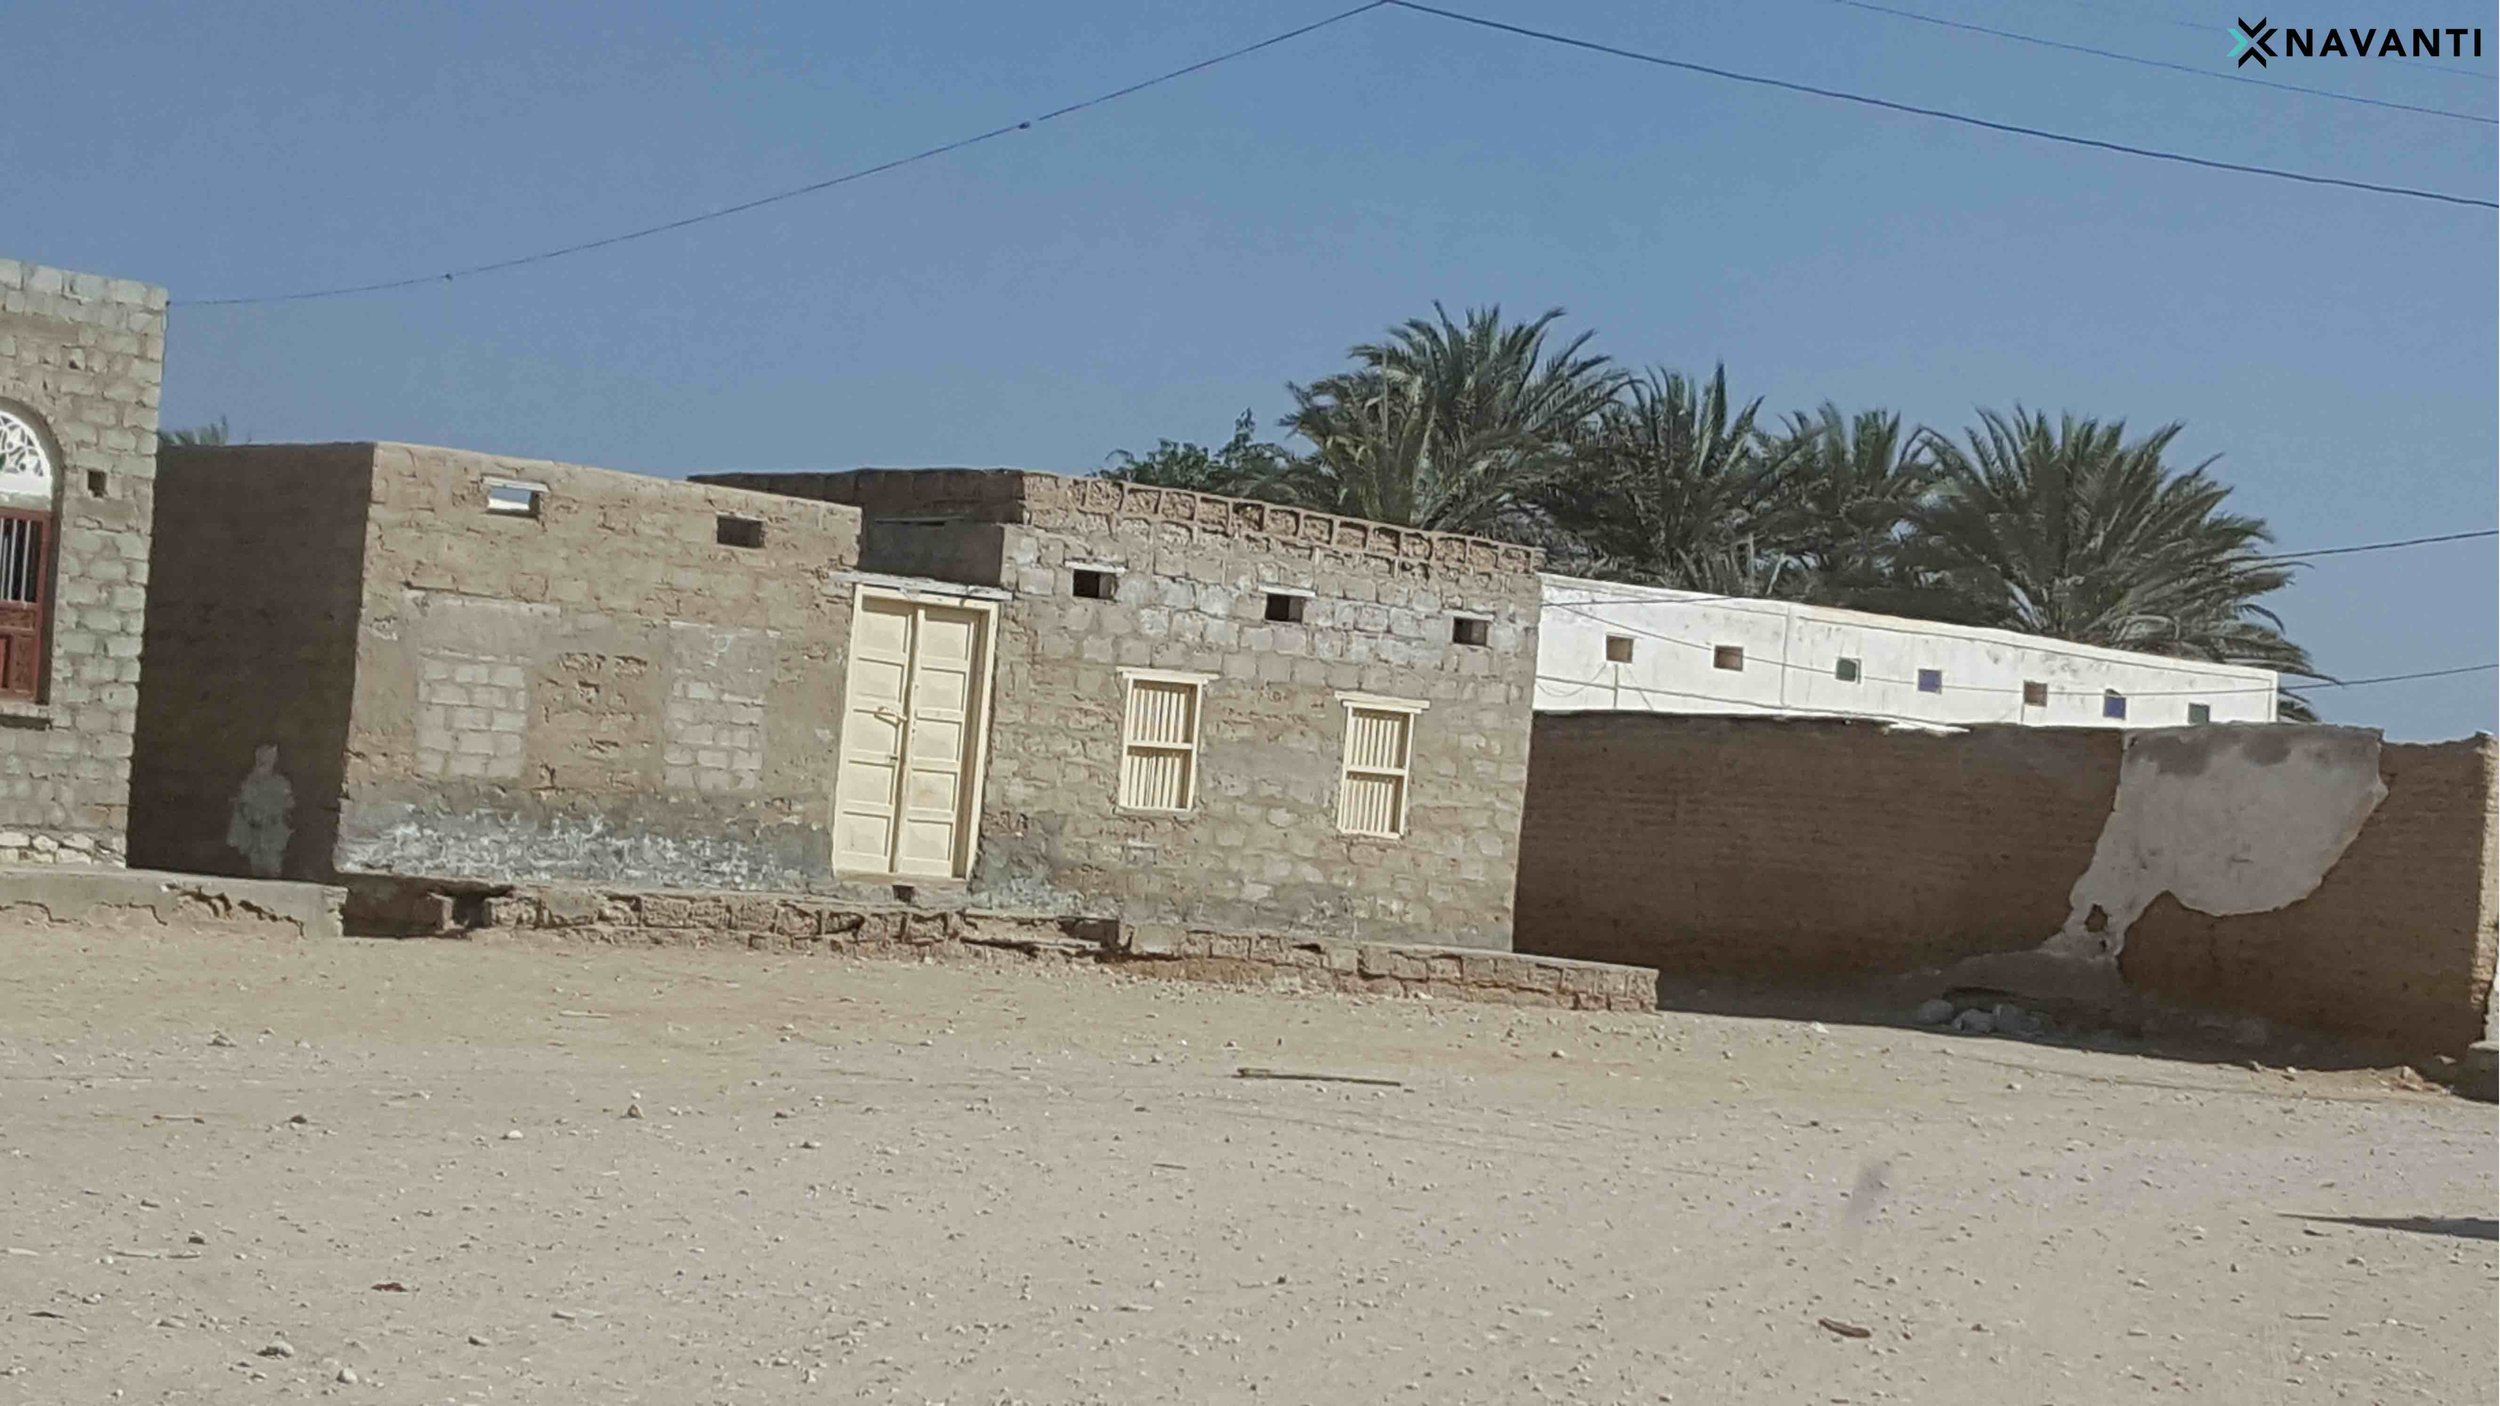 Working class homes in Sayhut, al-Mahra. Source: Navanti